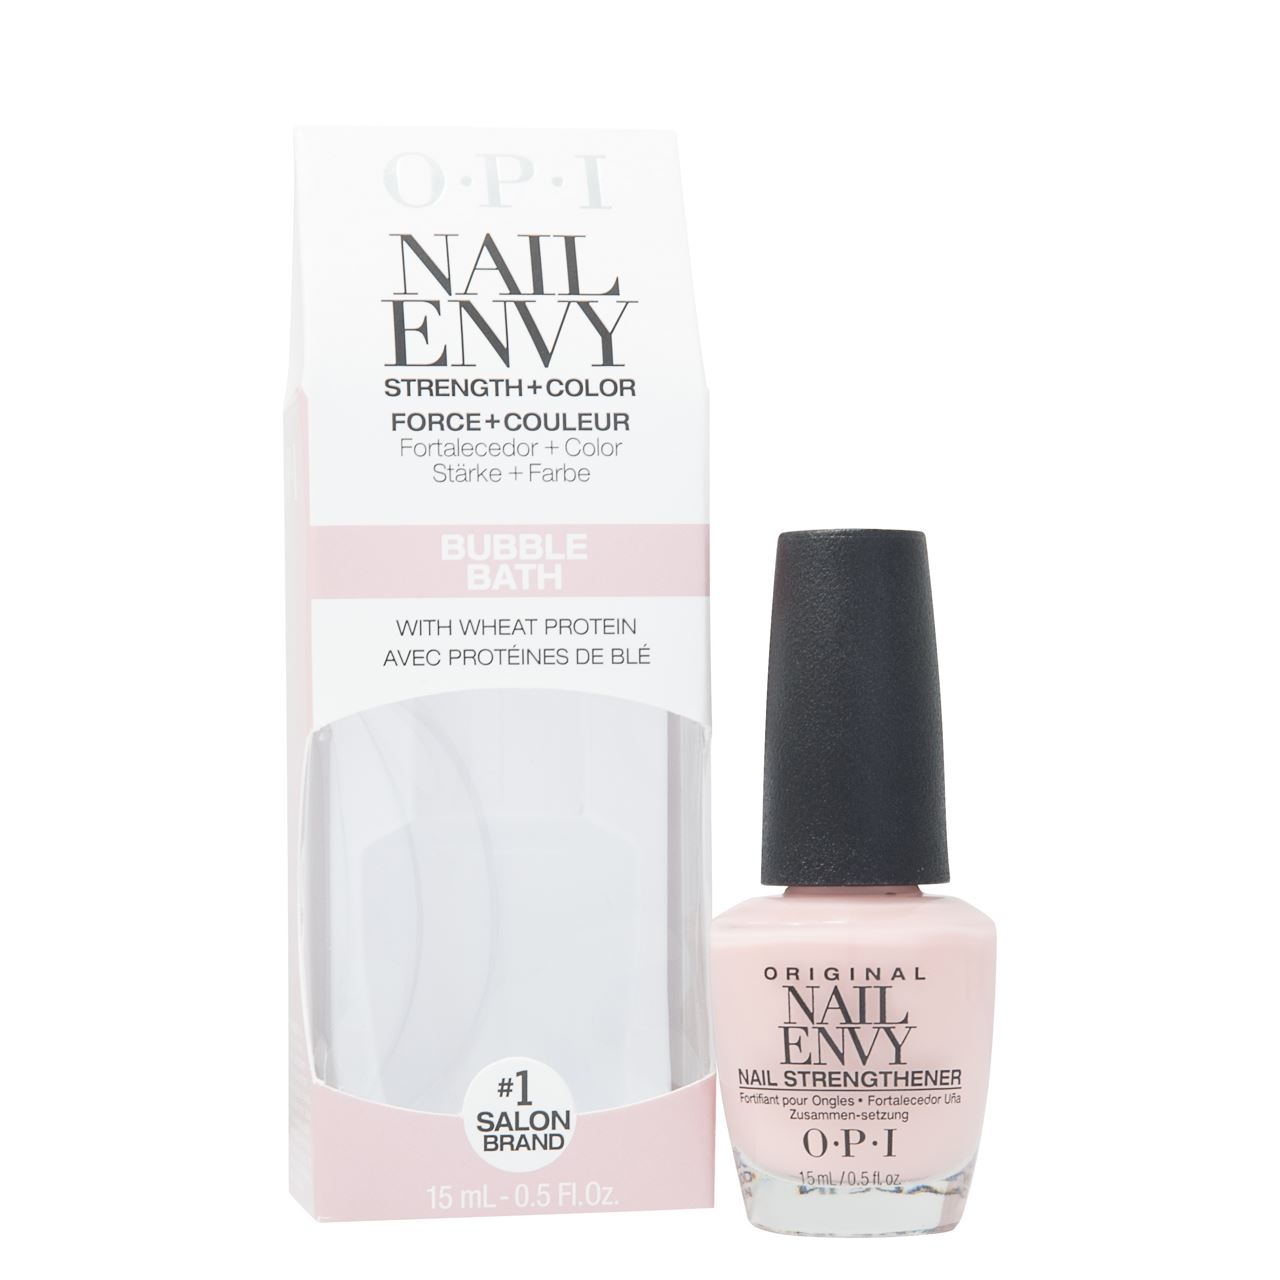 OPI Nail Envy Bubble Bath Nail Strengther 15ml with Wheat Protein ...